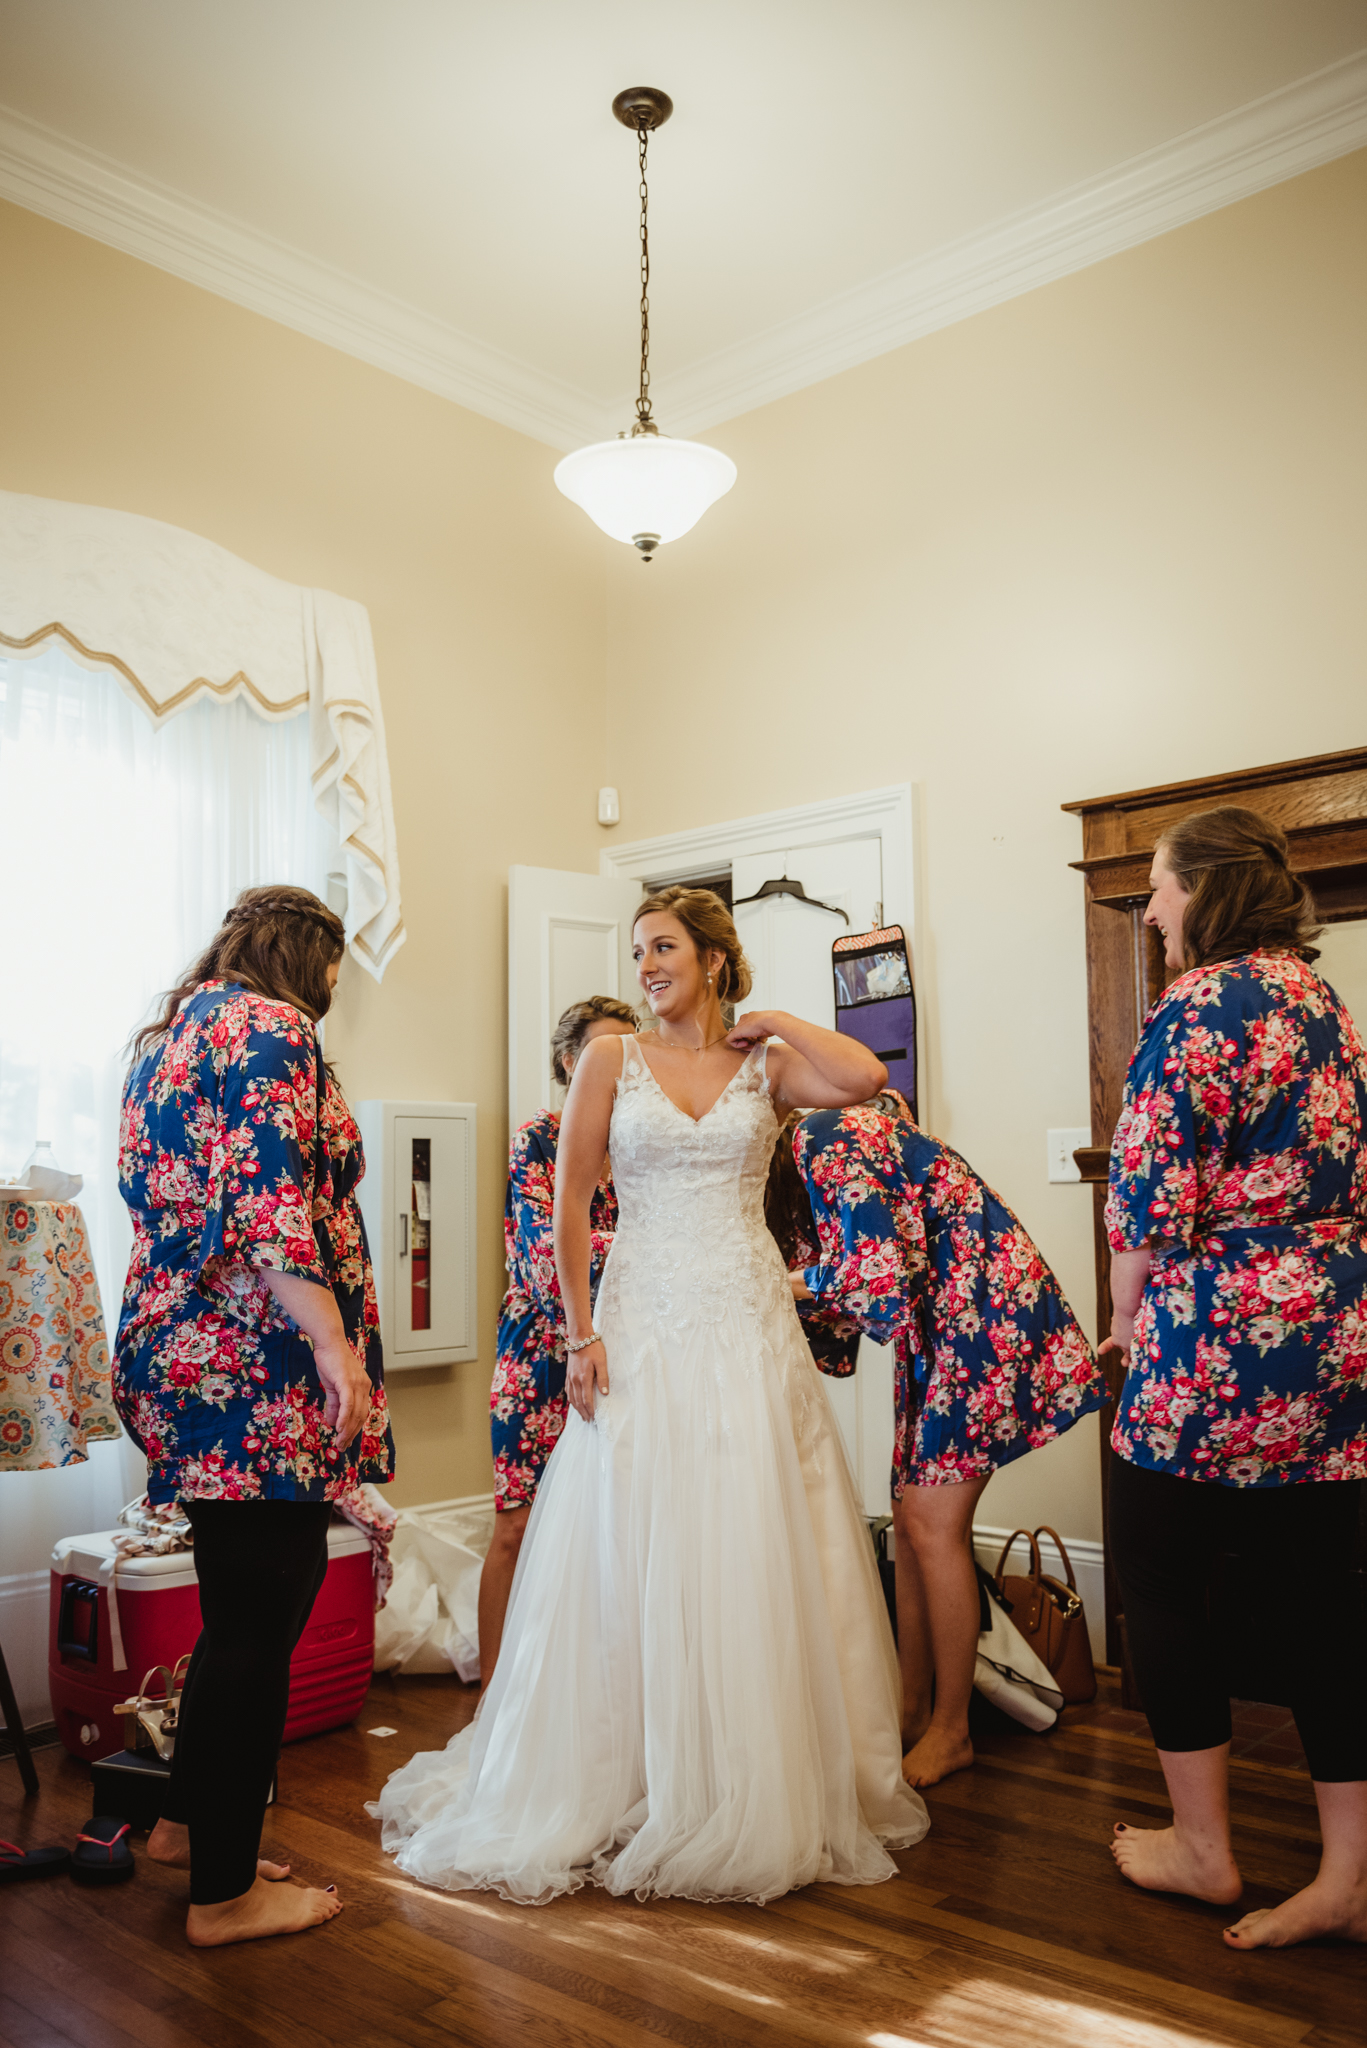 bridesmaids-helping-the-bride-get-dressed.jpg